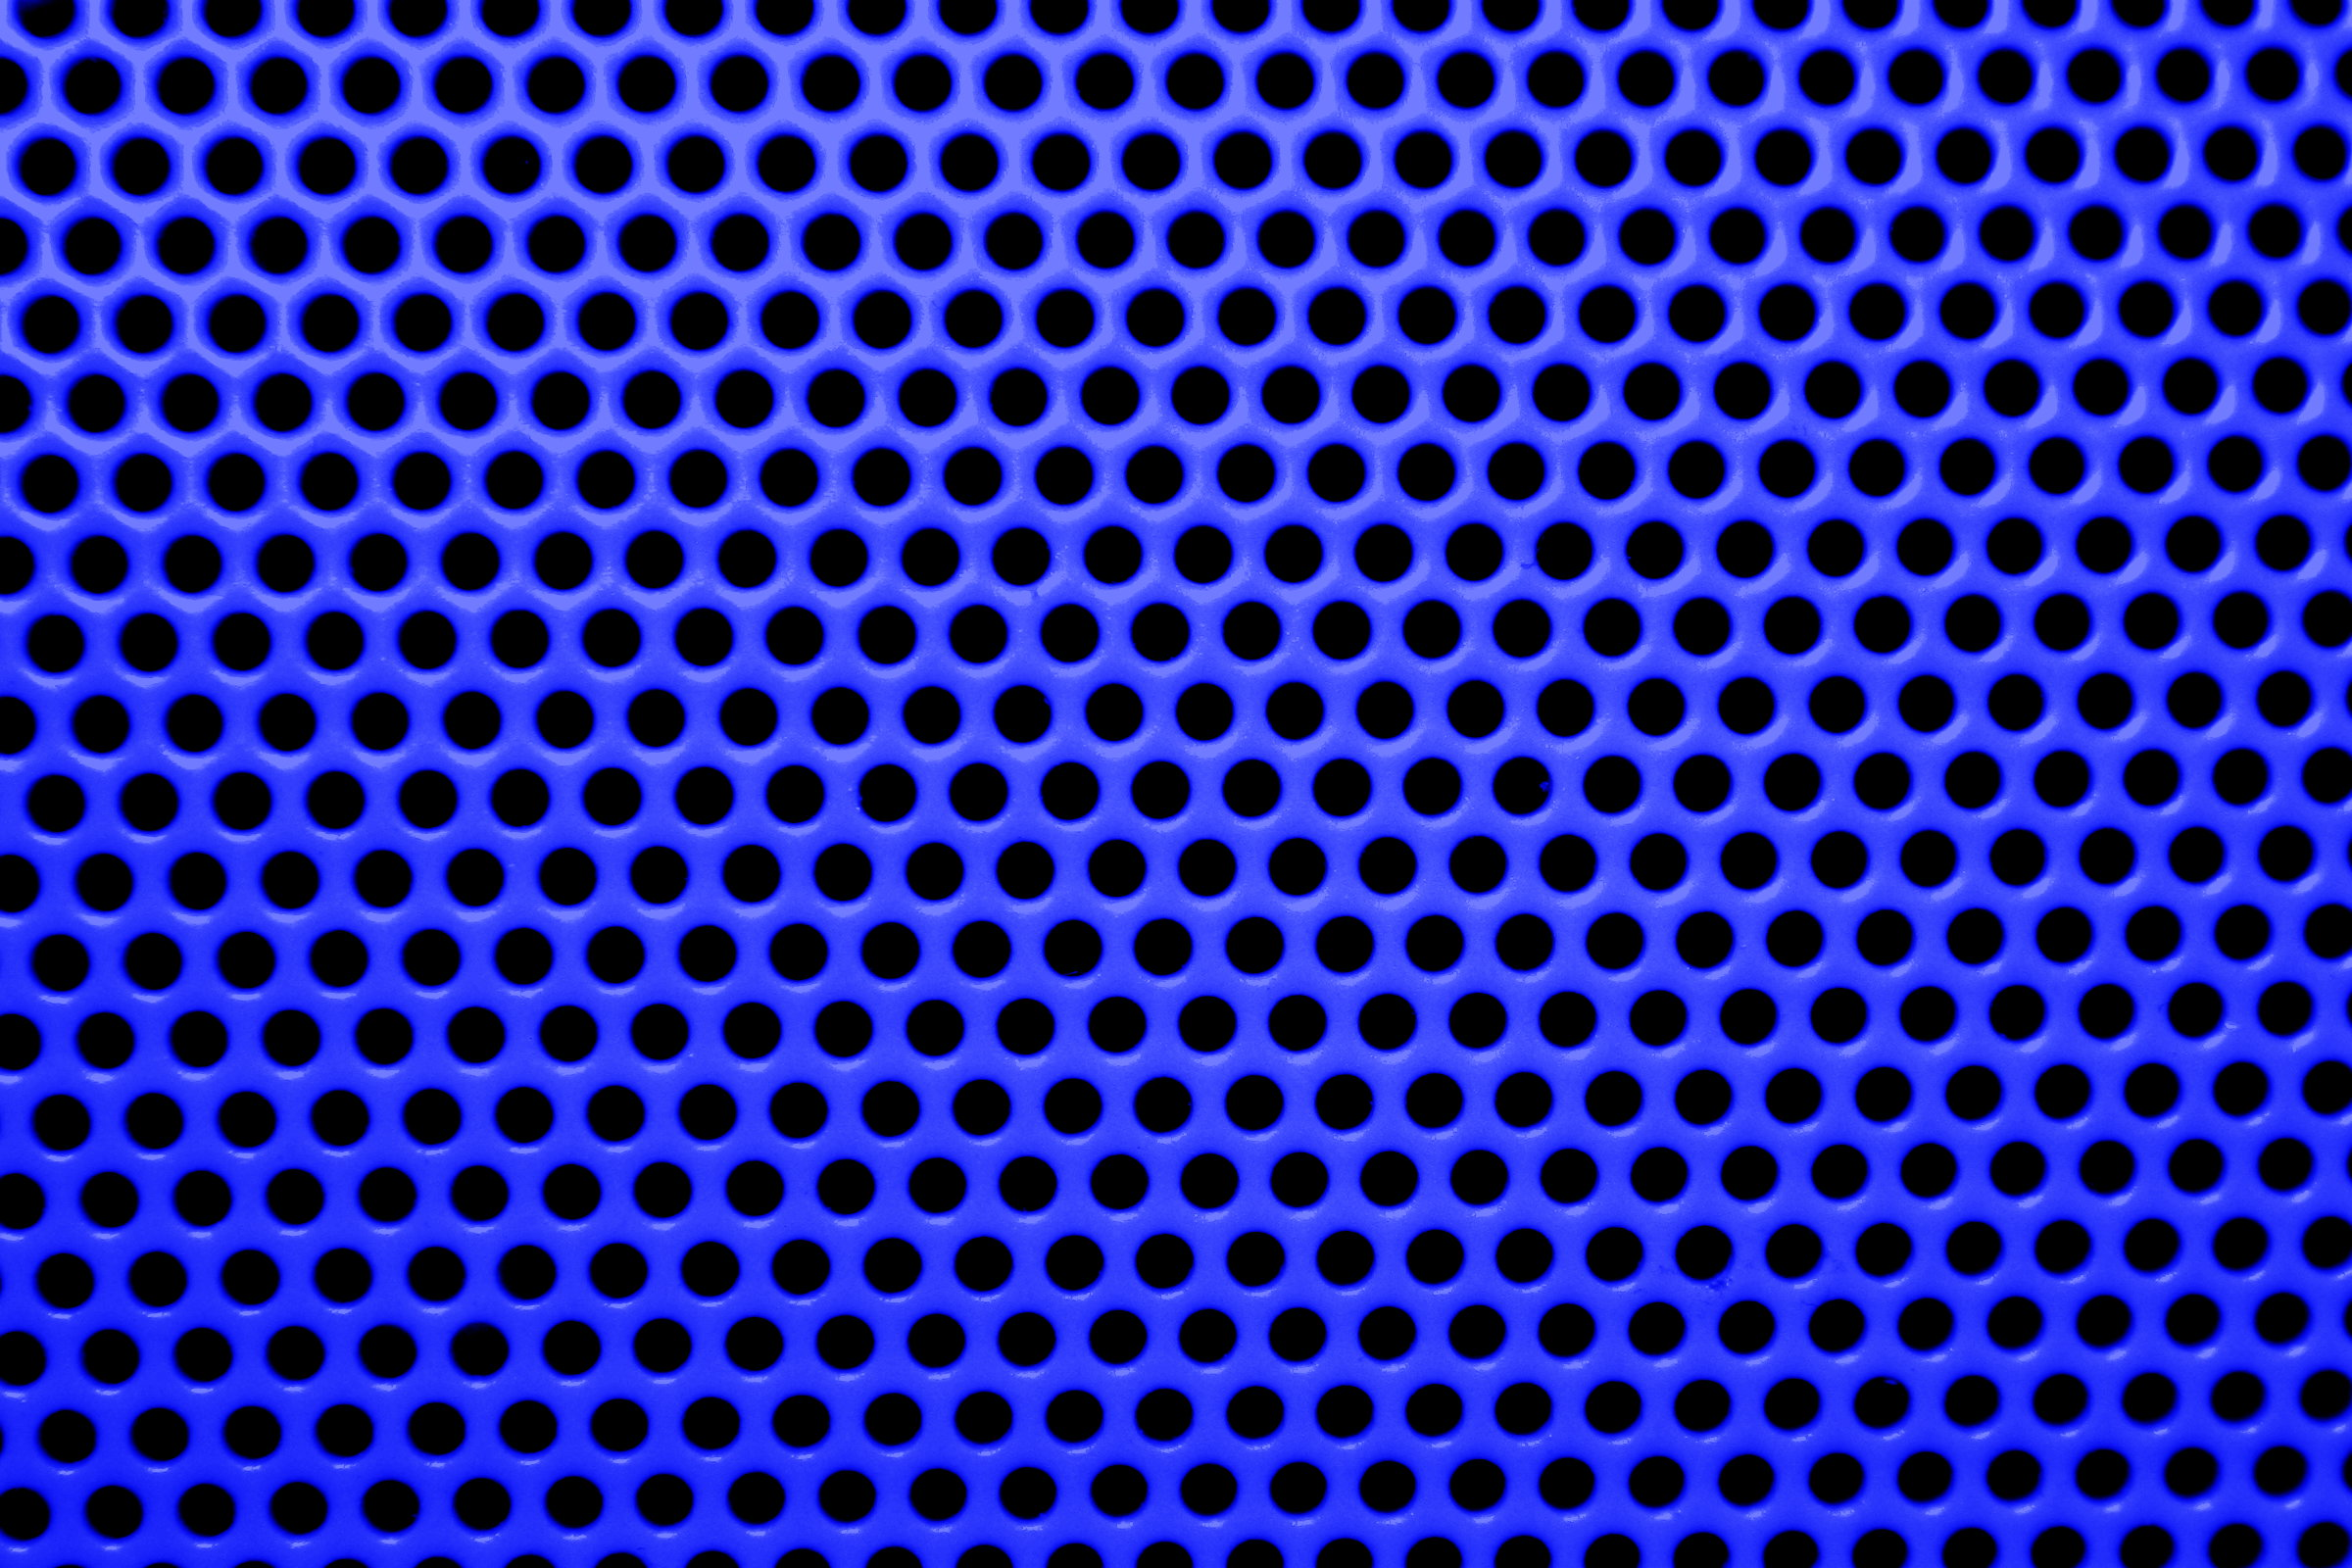 Blue Mesh With Round Holes Texture Picture Free